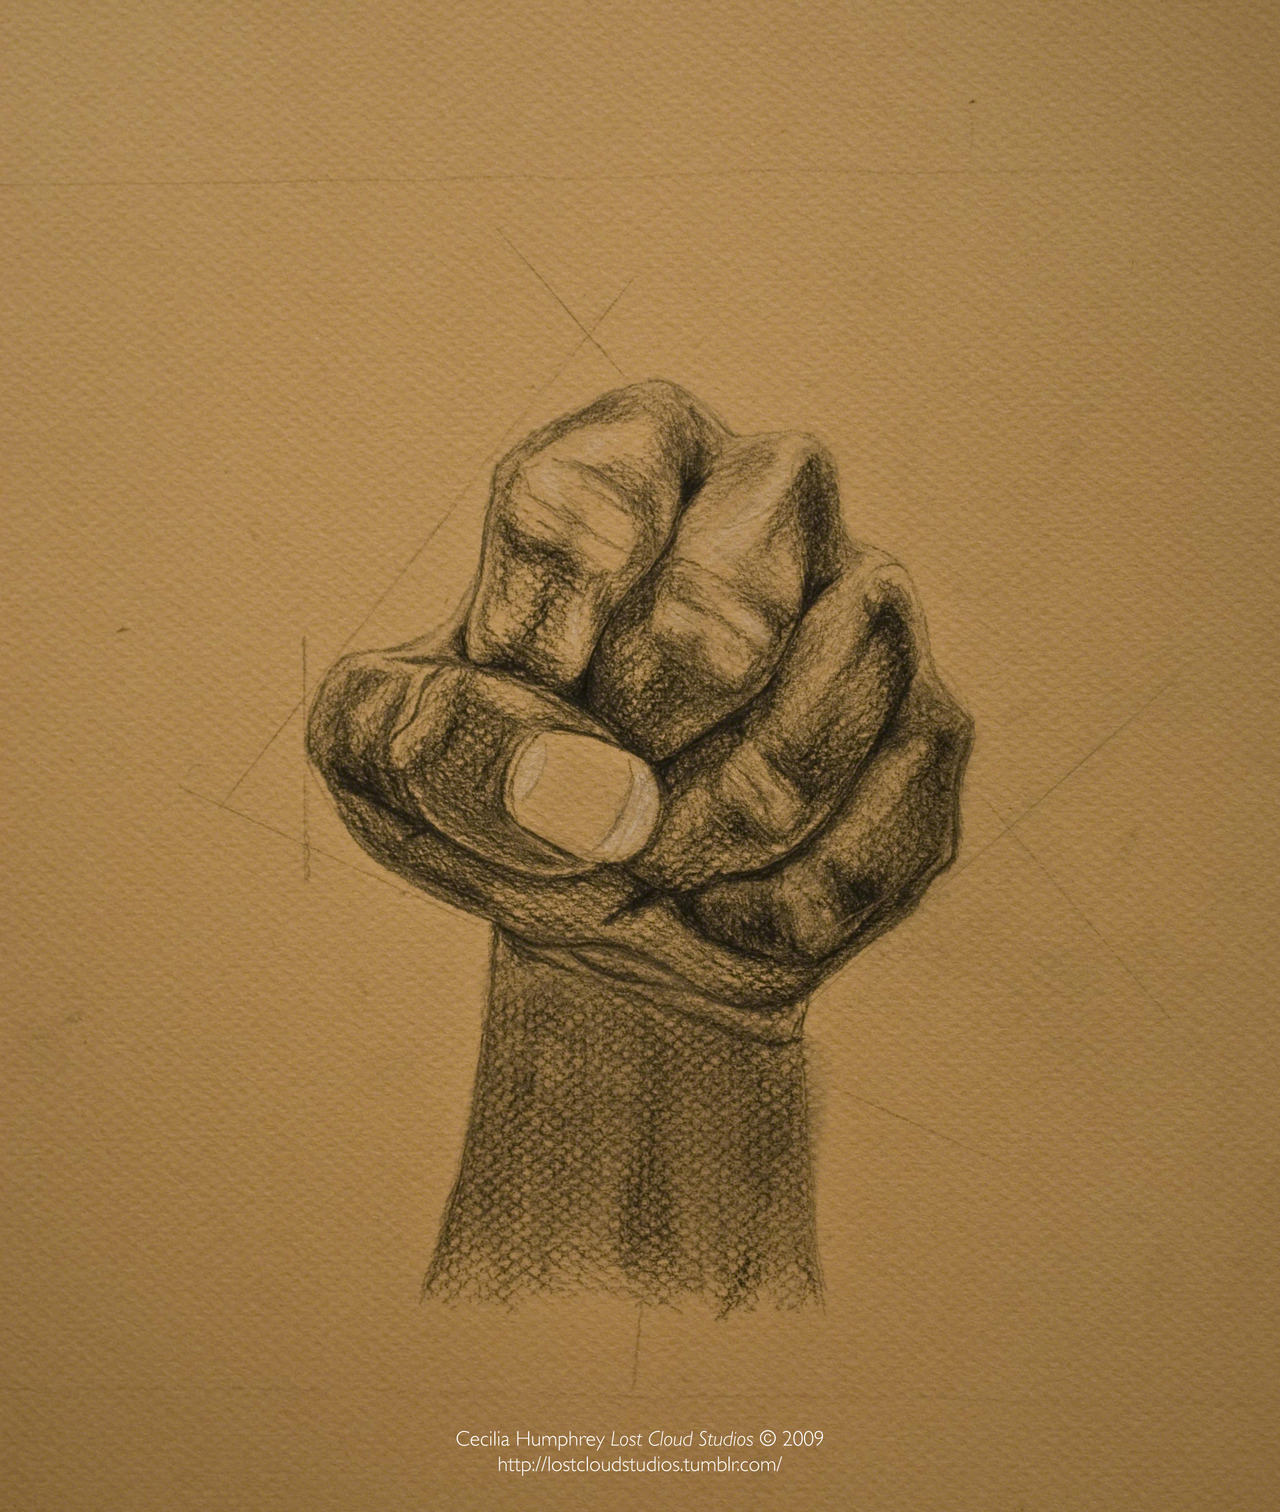 Study of (my) Fist  (2009) Cecilia Humphrey. Pencil on Paper.